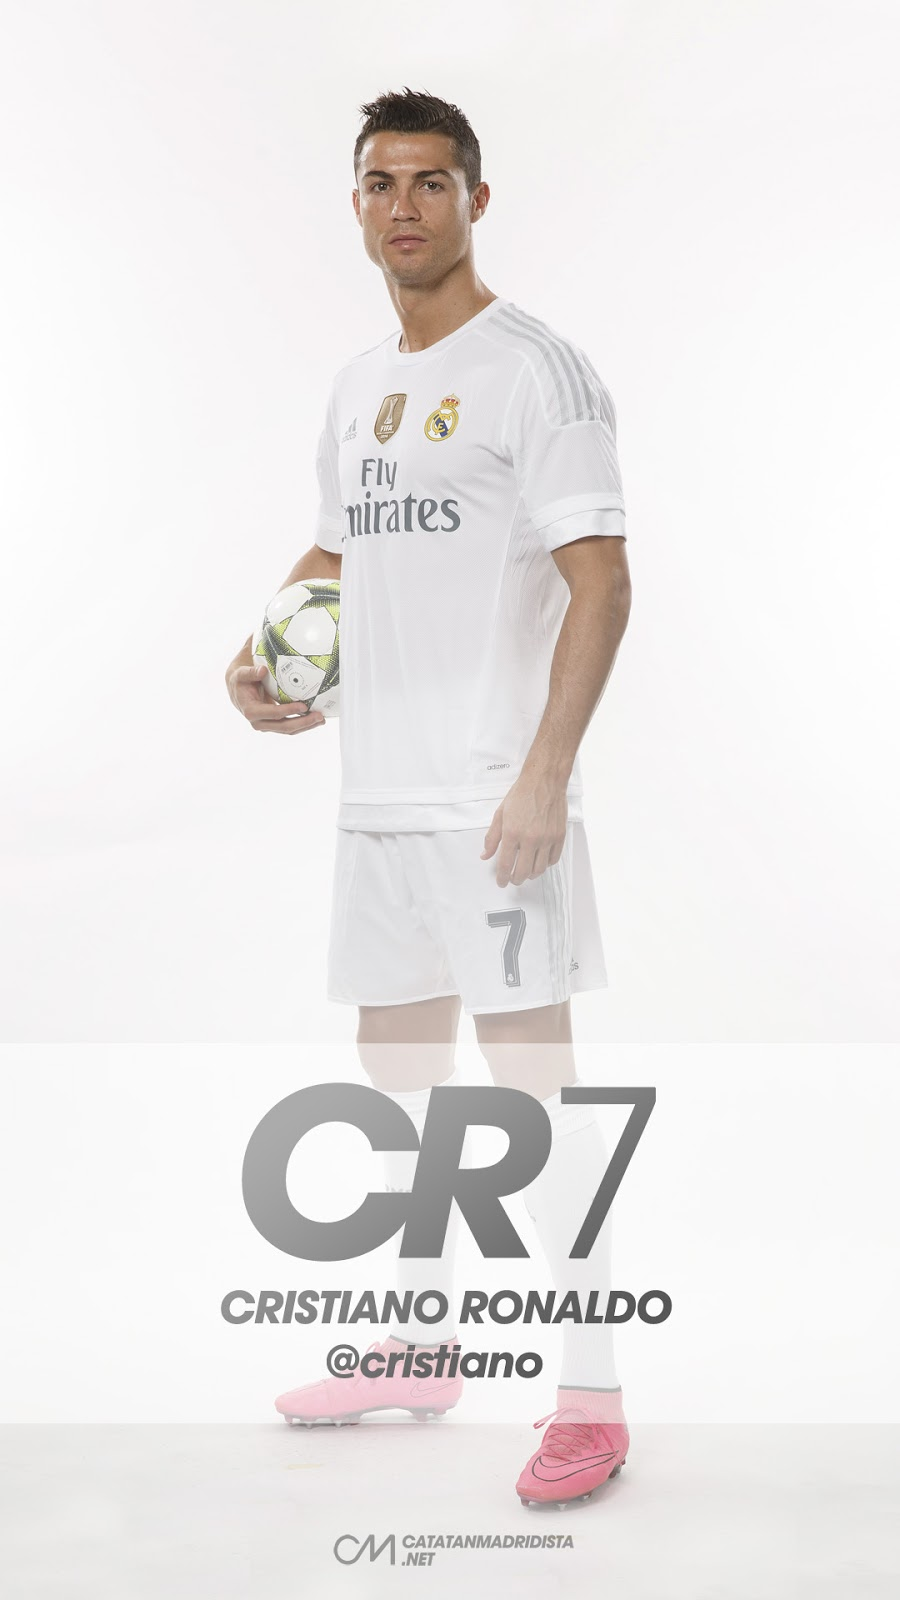 Cristiano Ronaldo Wallpaper For Iphone And Android Full Hd Hd